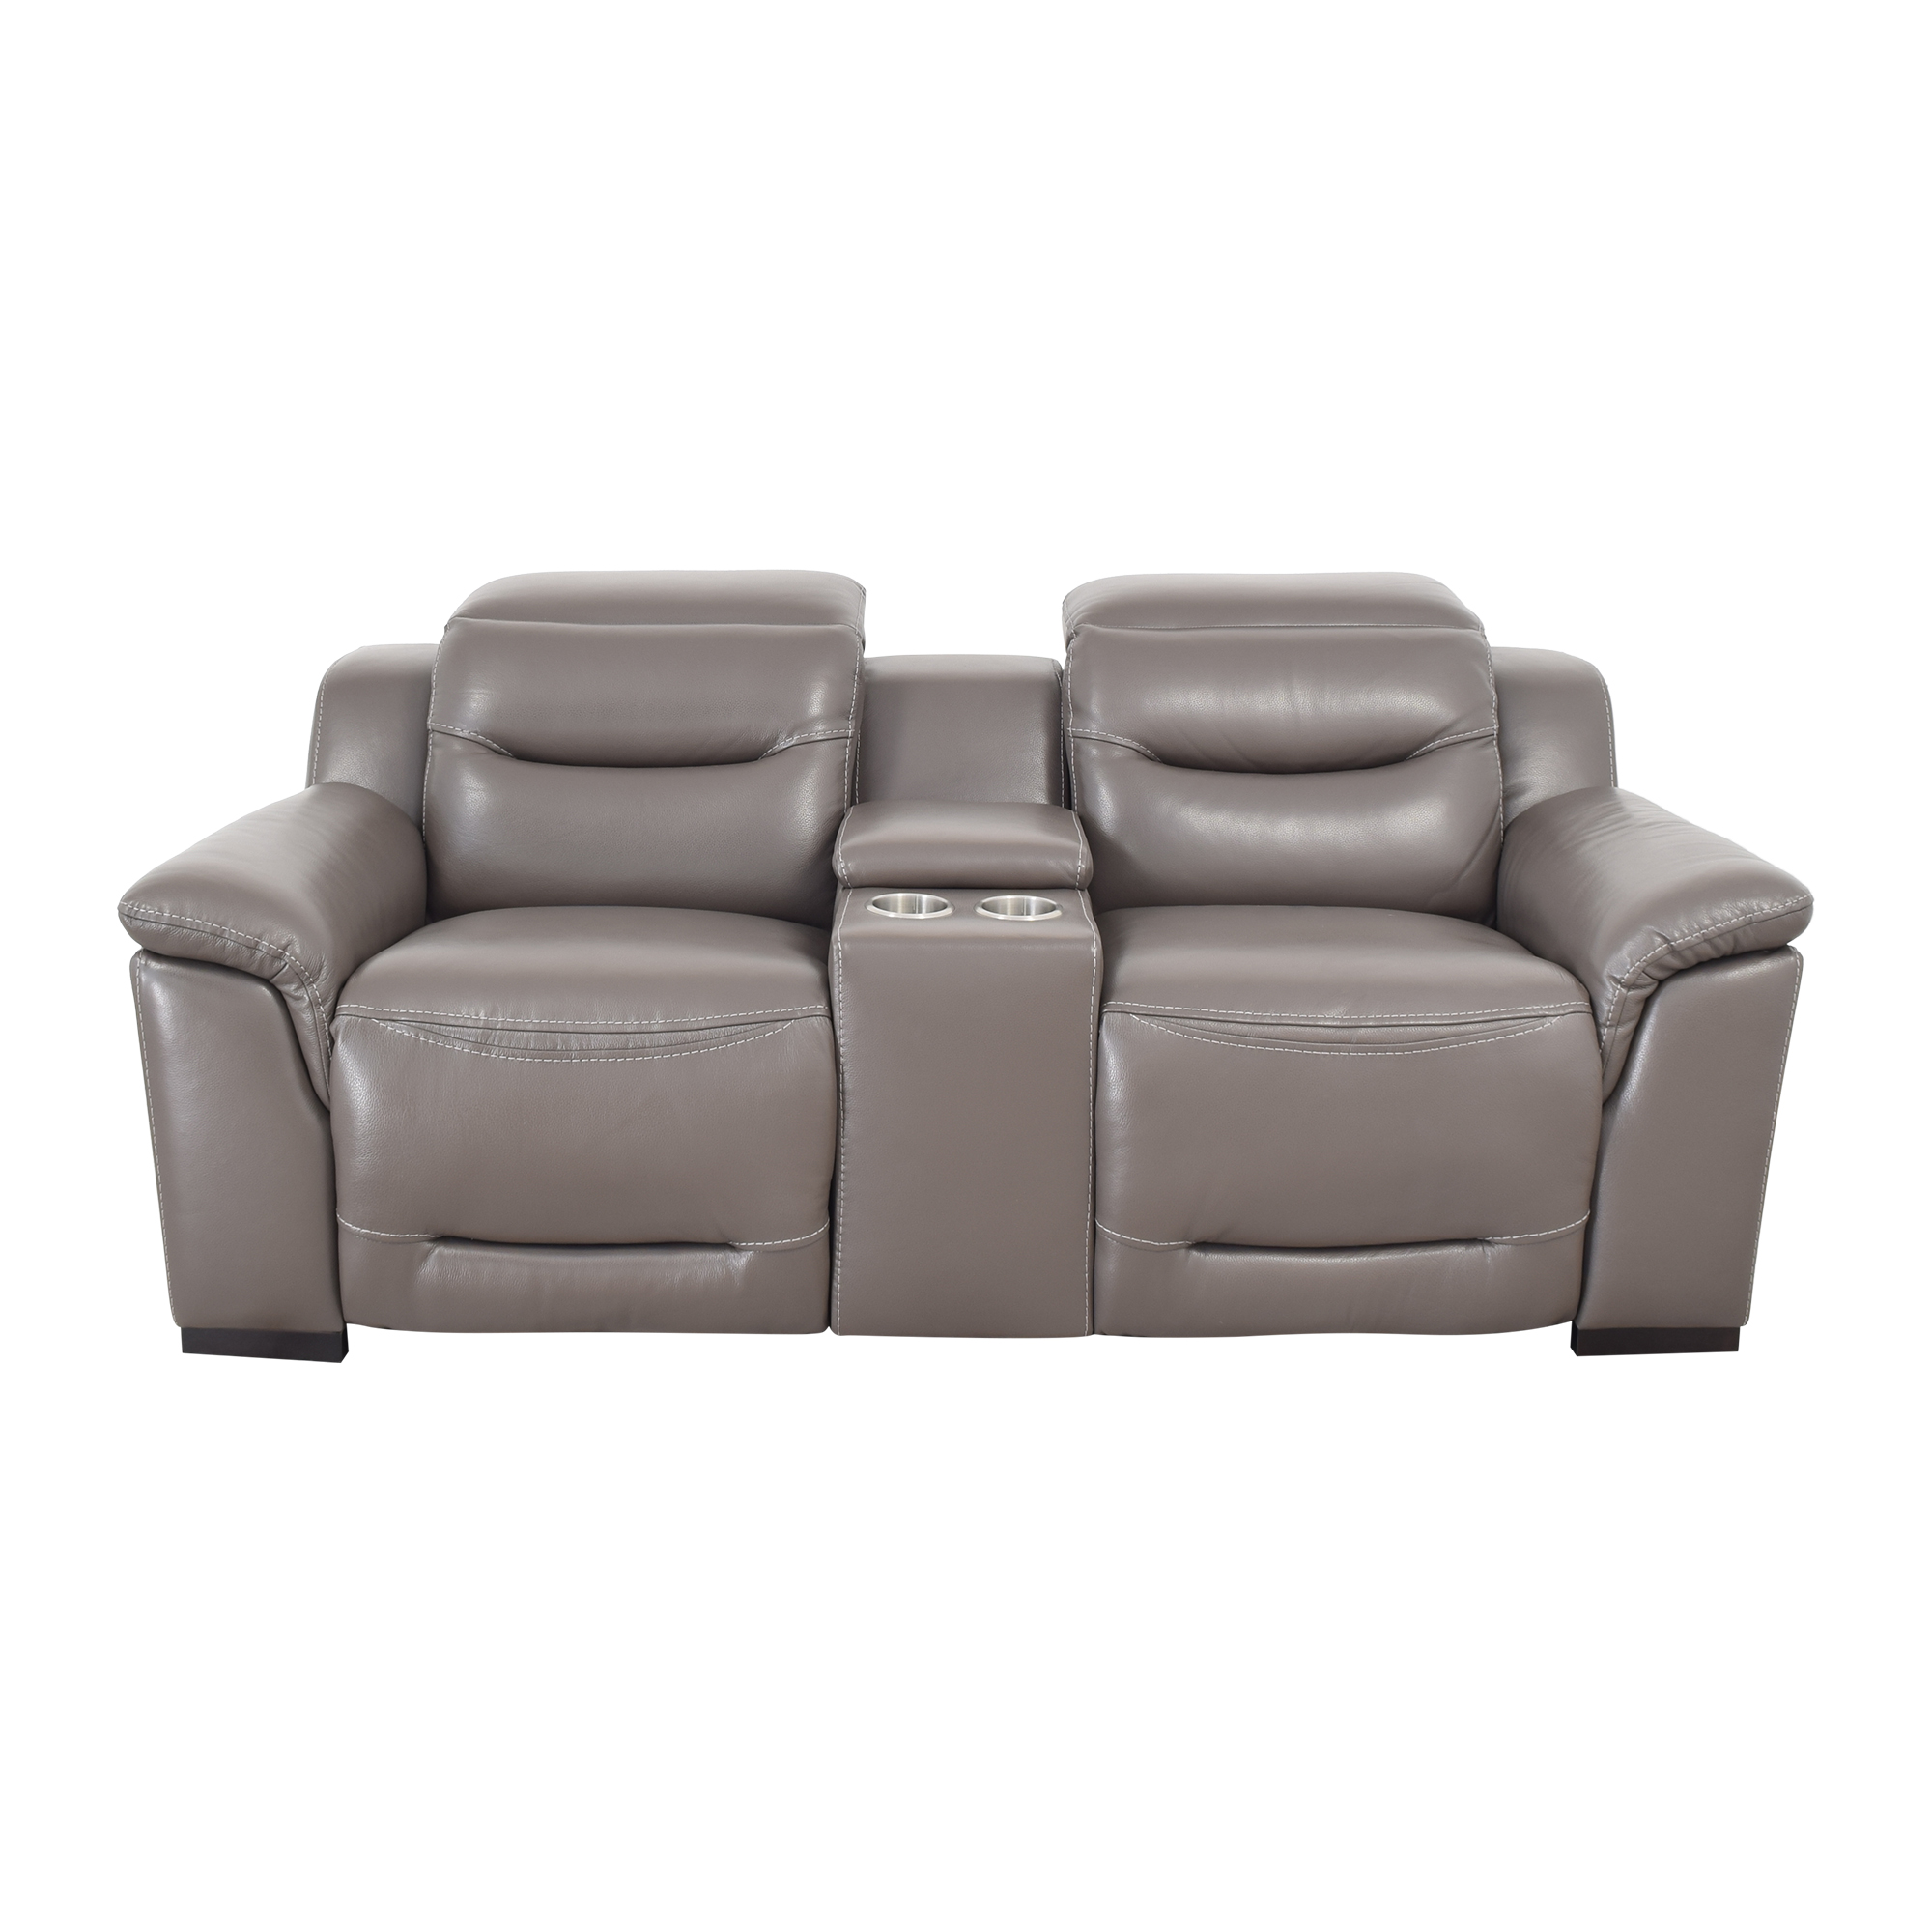 Jason Furniture Jason Furniture Midori Power Reclining Sofa with Console price